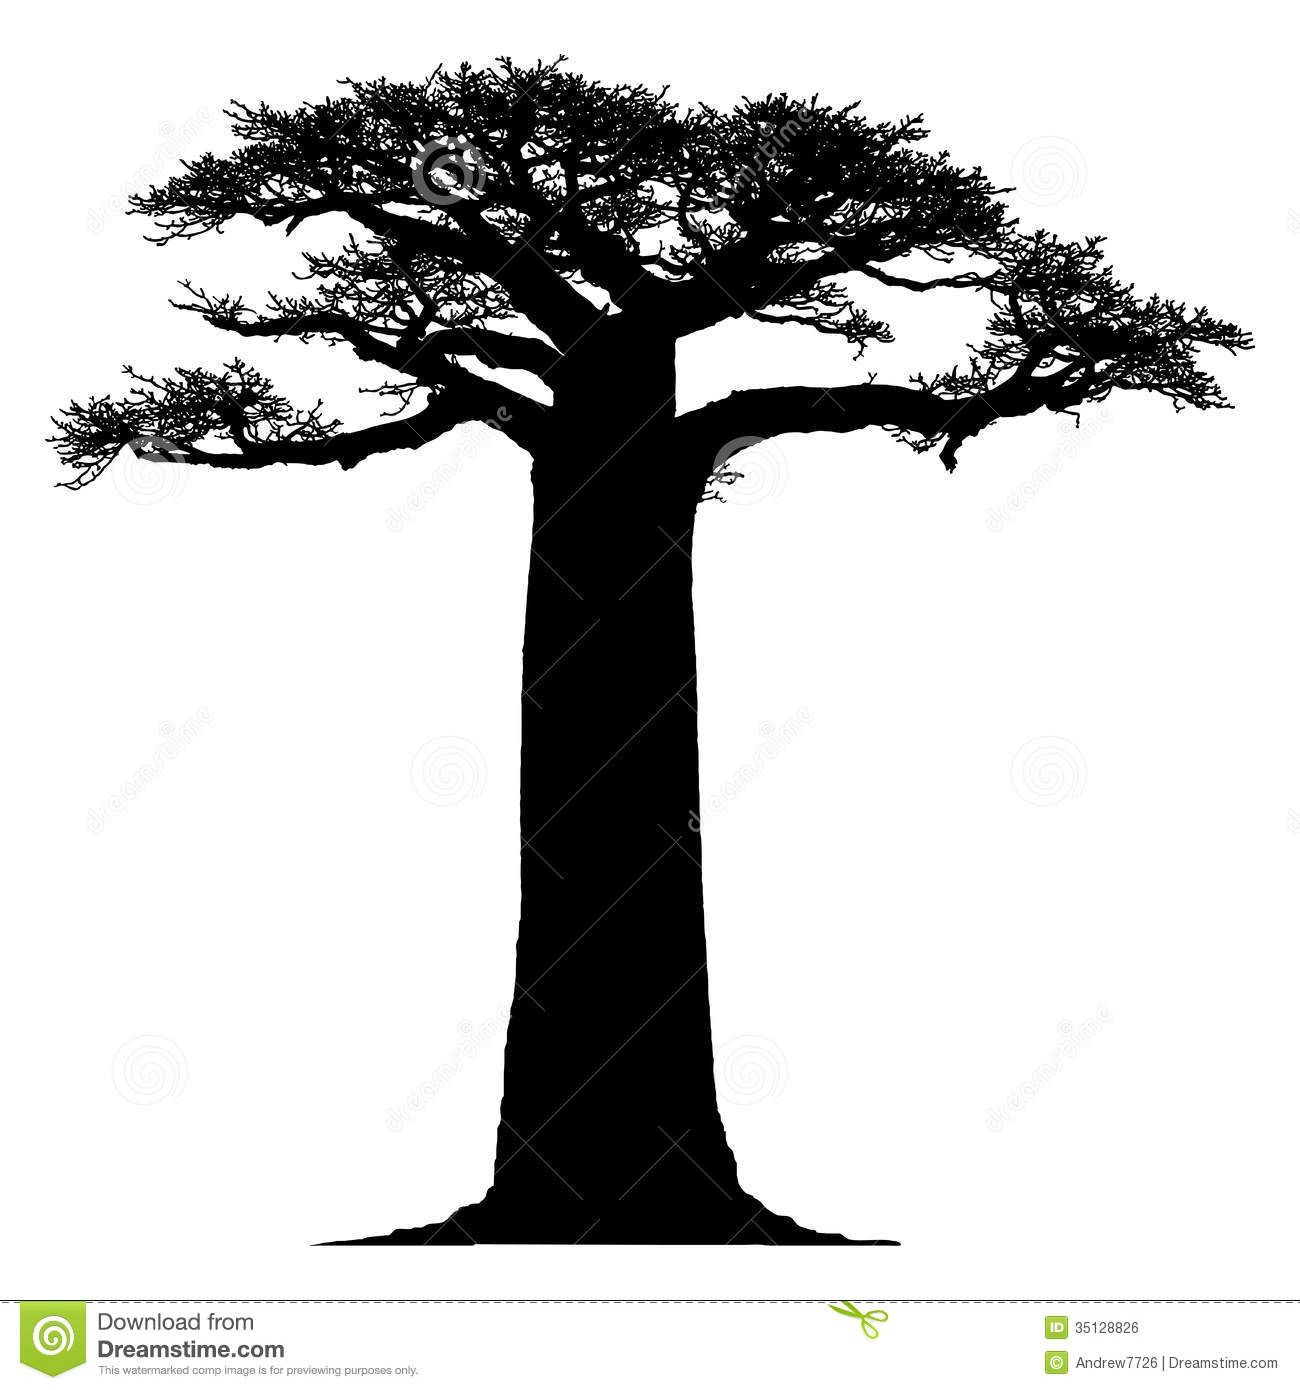 baobab tree africa for cutouts madagascar pinterest bosques viajar y cuadro. Black Bedroom Furniture Sets. Home Design Ideas